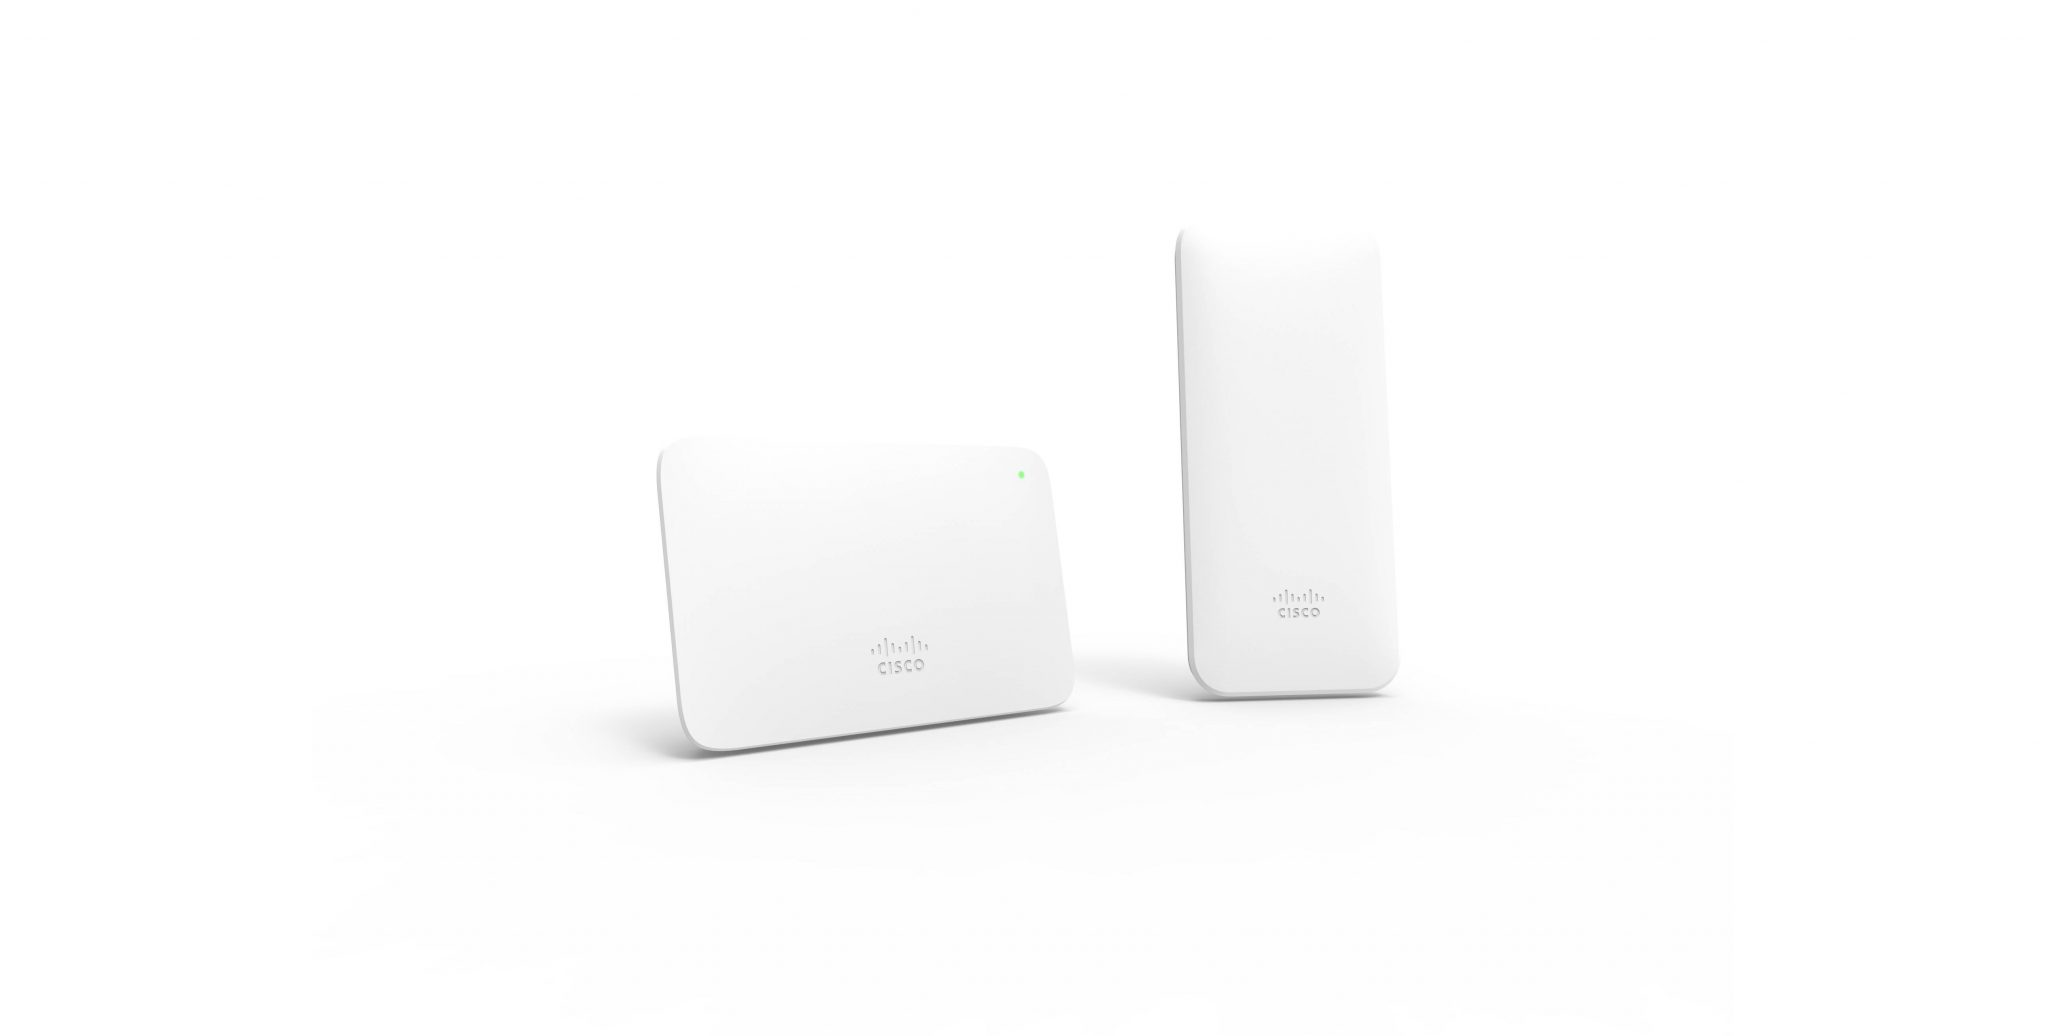 Cisco Meraki - AdamLouis